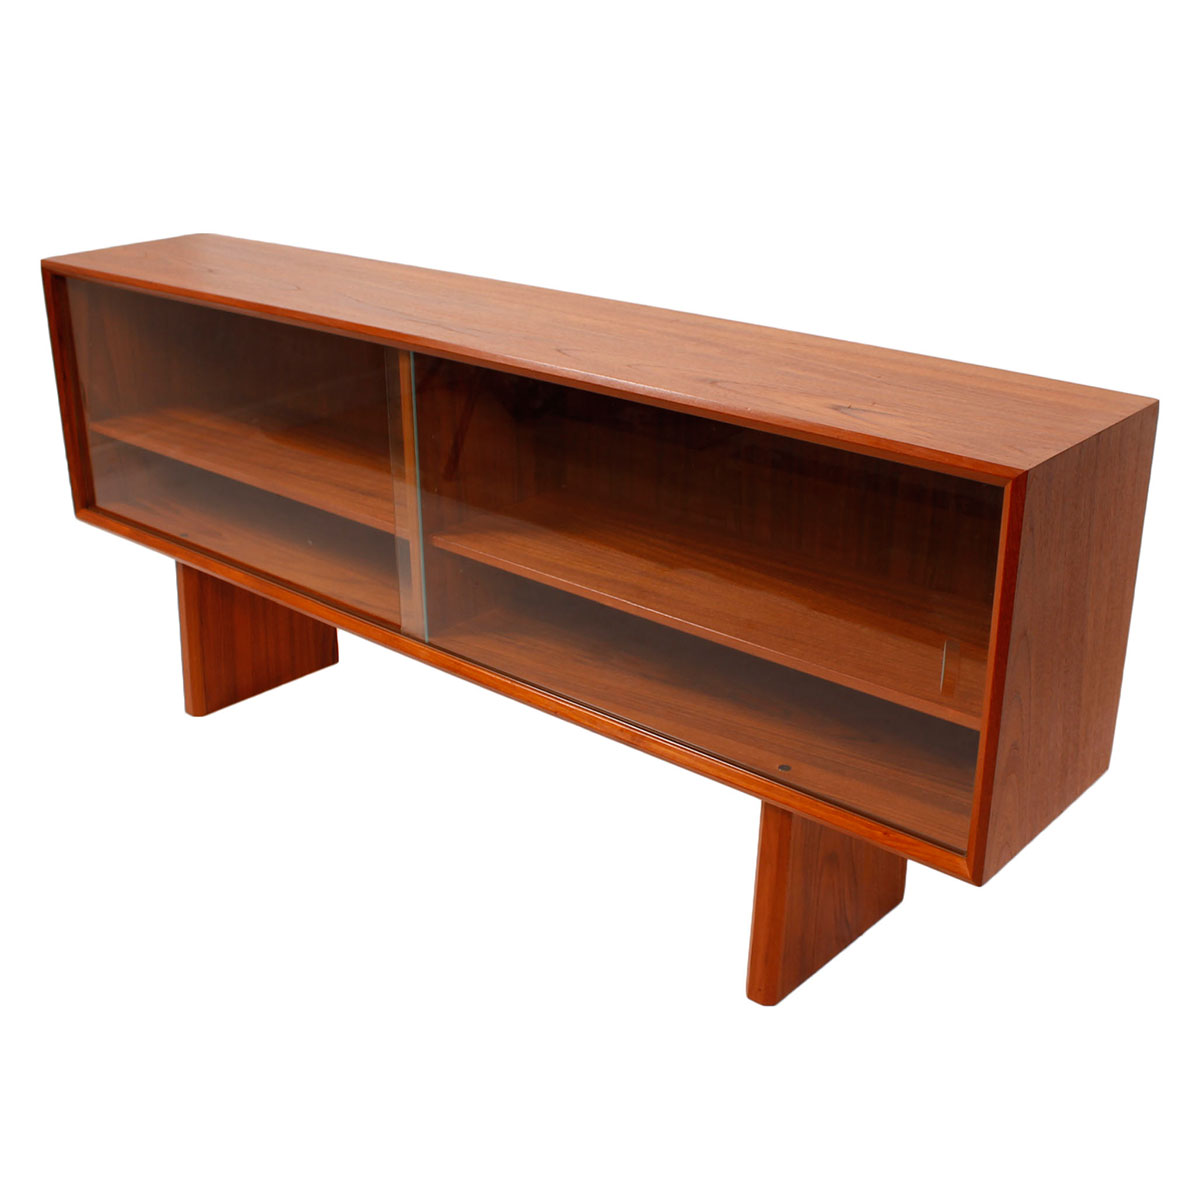 Low Danish Modern Teak Sideboard / Hutch Top with Sliding Glass Doors